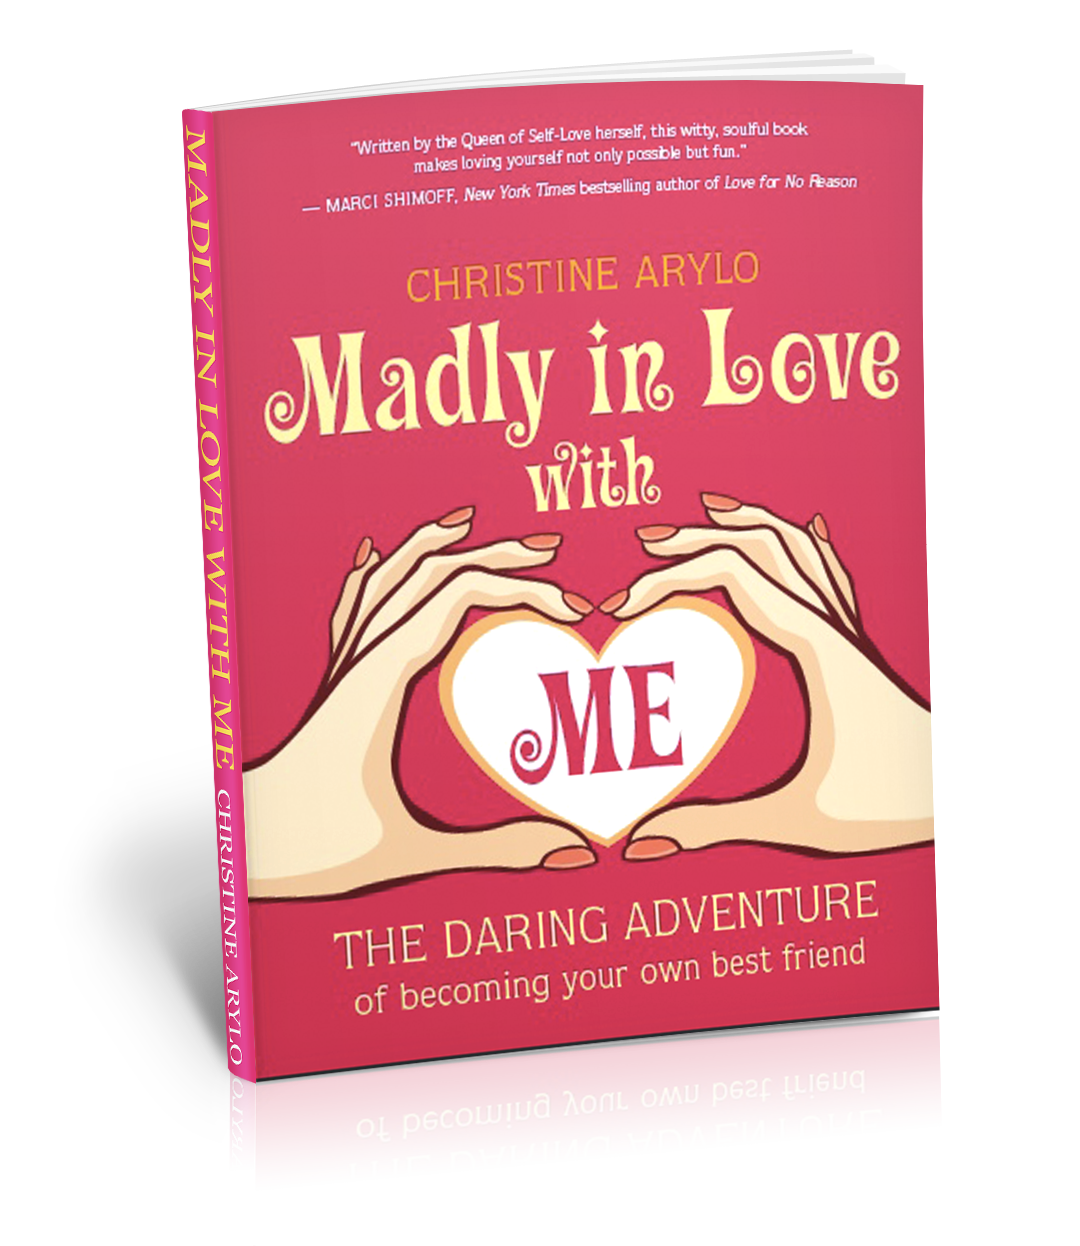 madly in love with me review